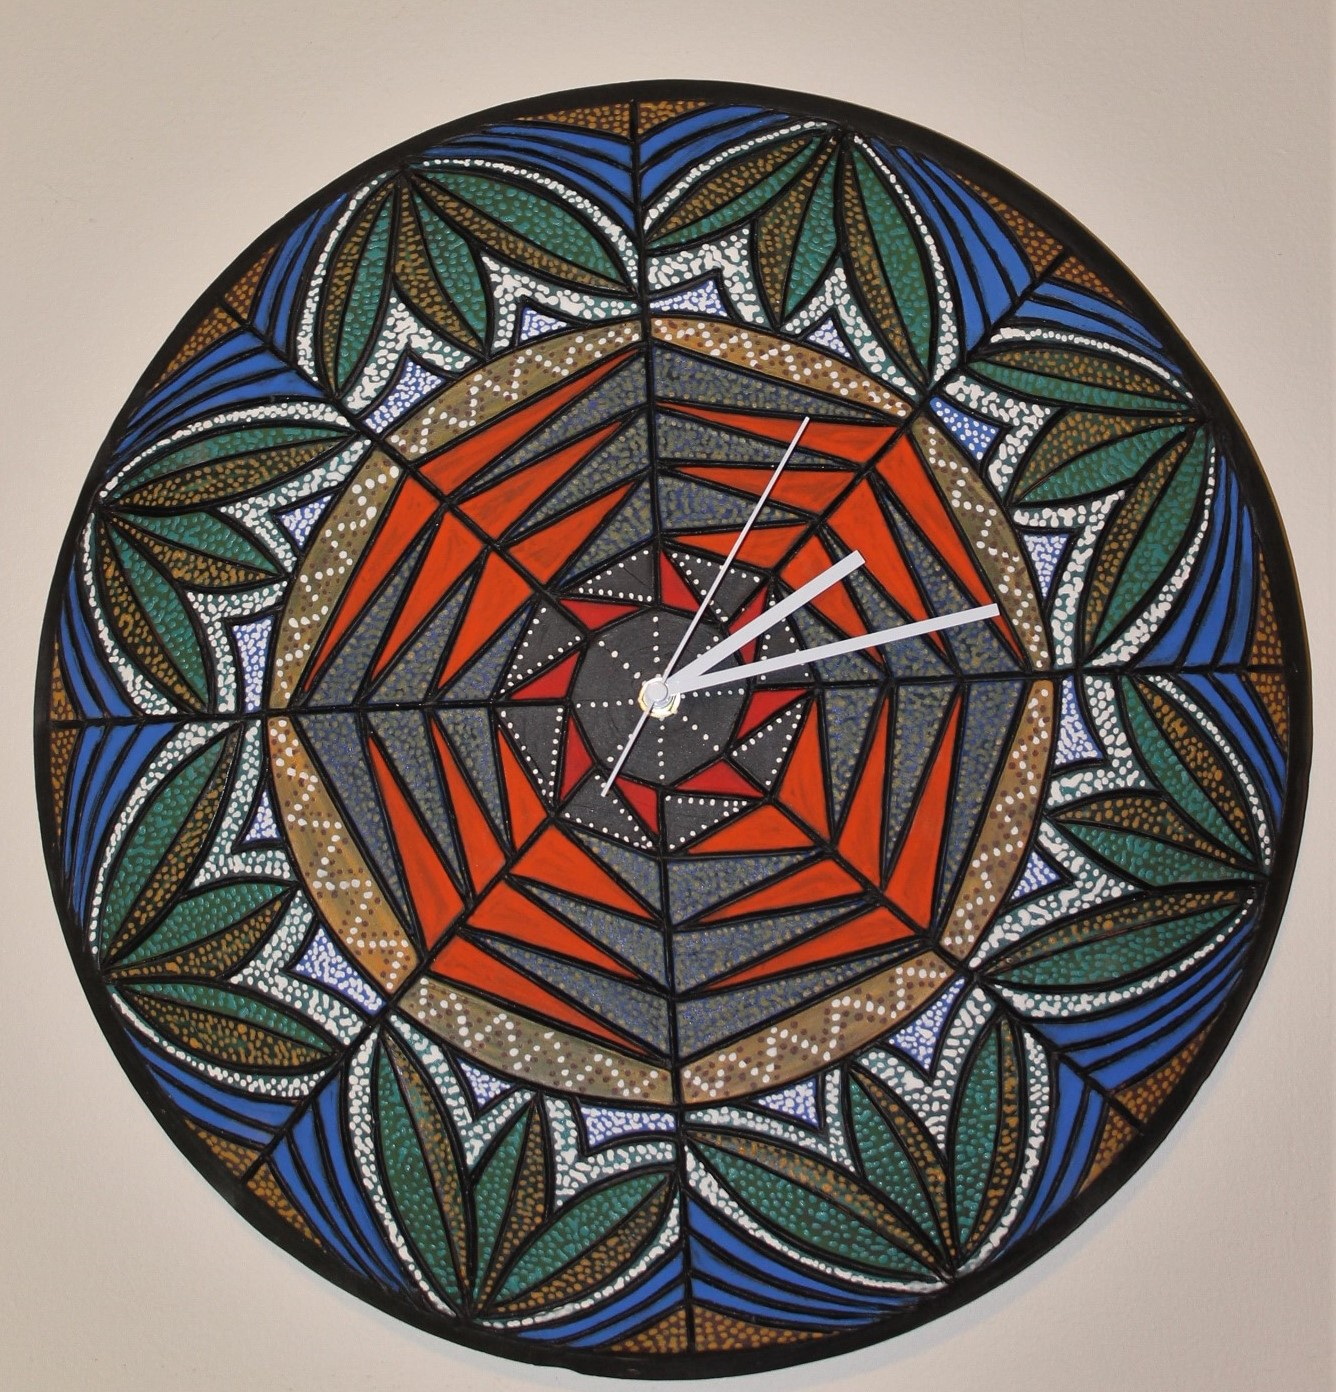 20inch diameter Wall Clock ceramic art $180